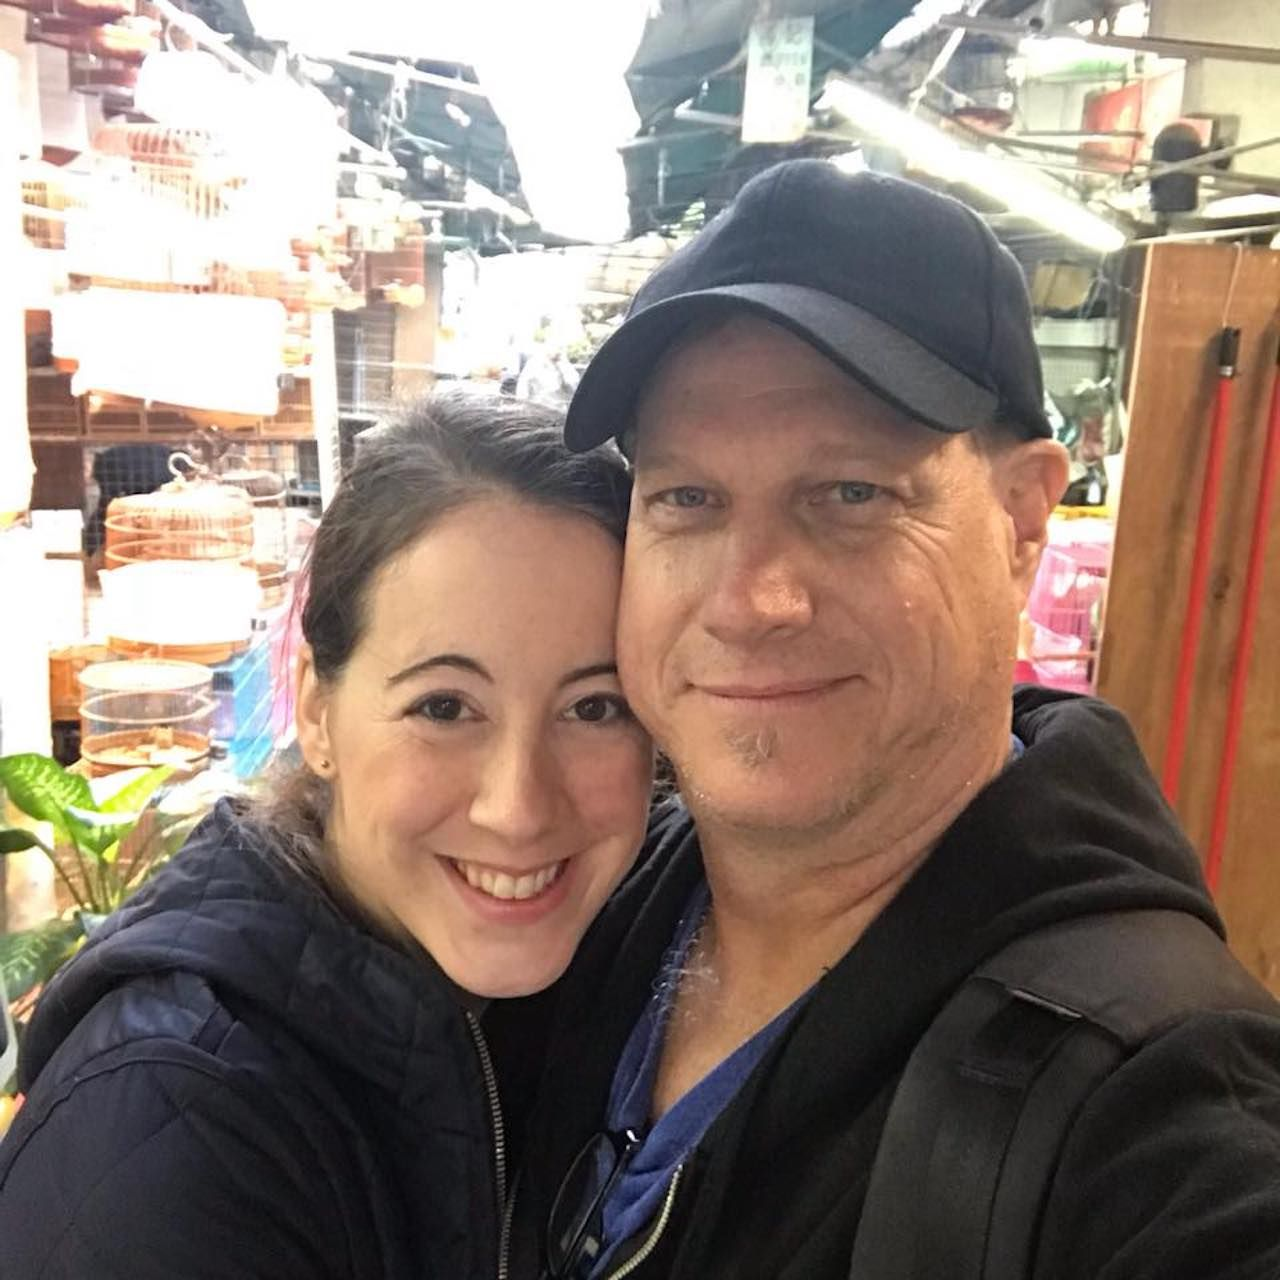 Couple to marry at Cleveland airport